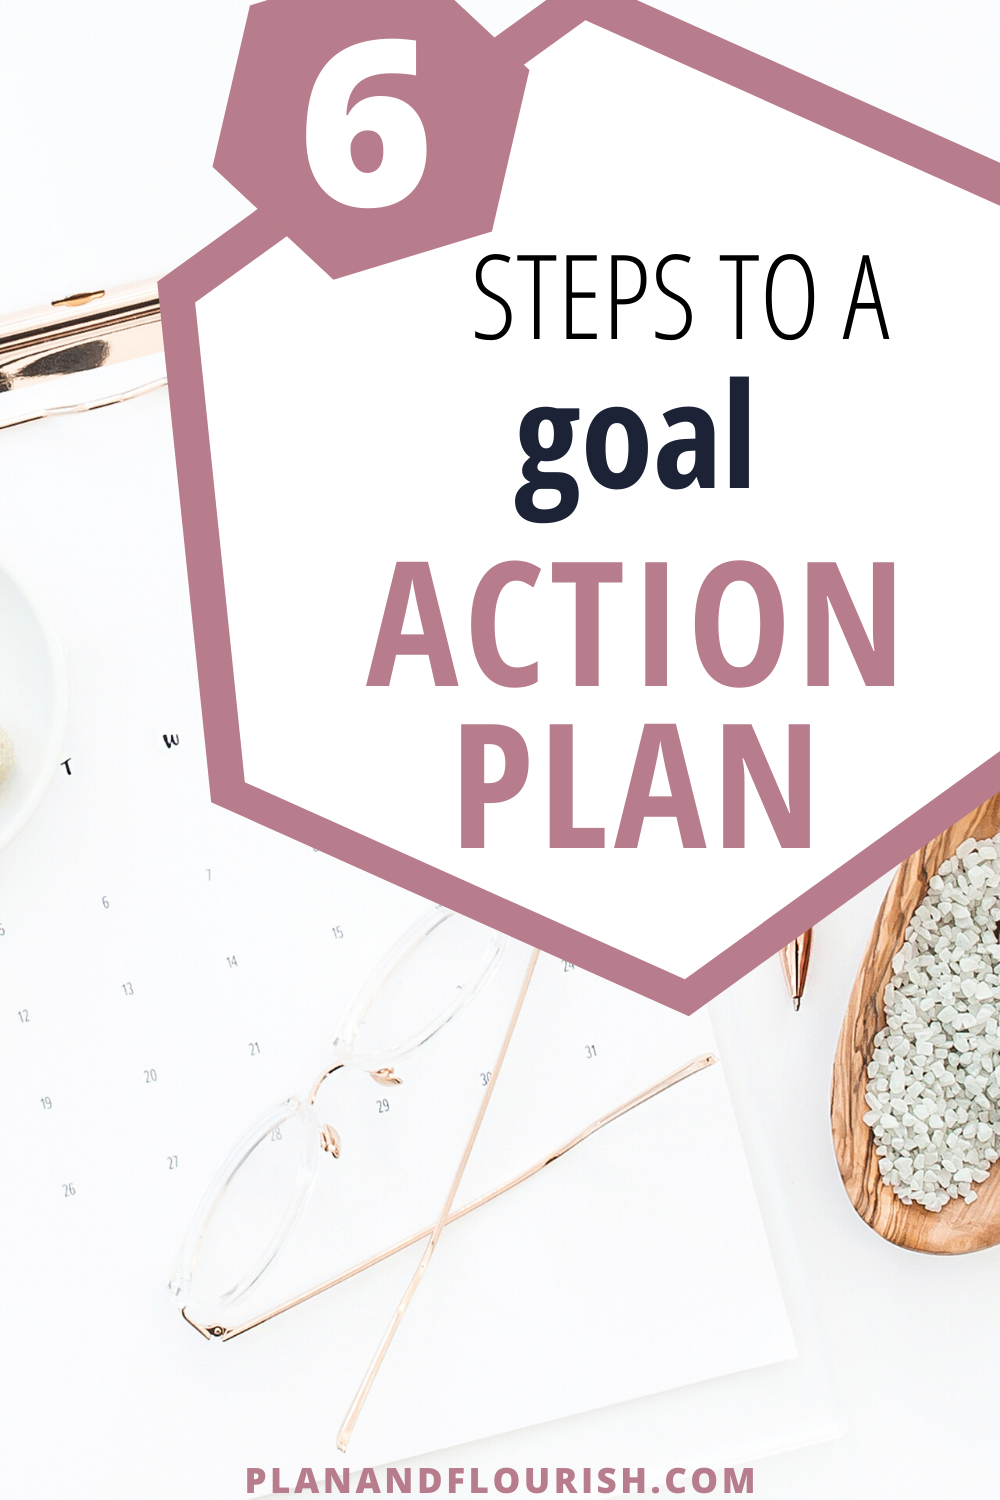 6 Steps To A Goal Action Plan